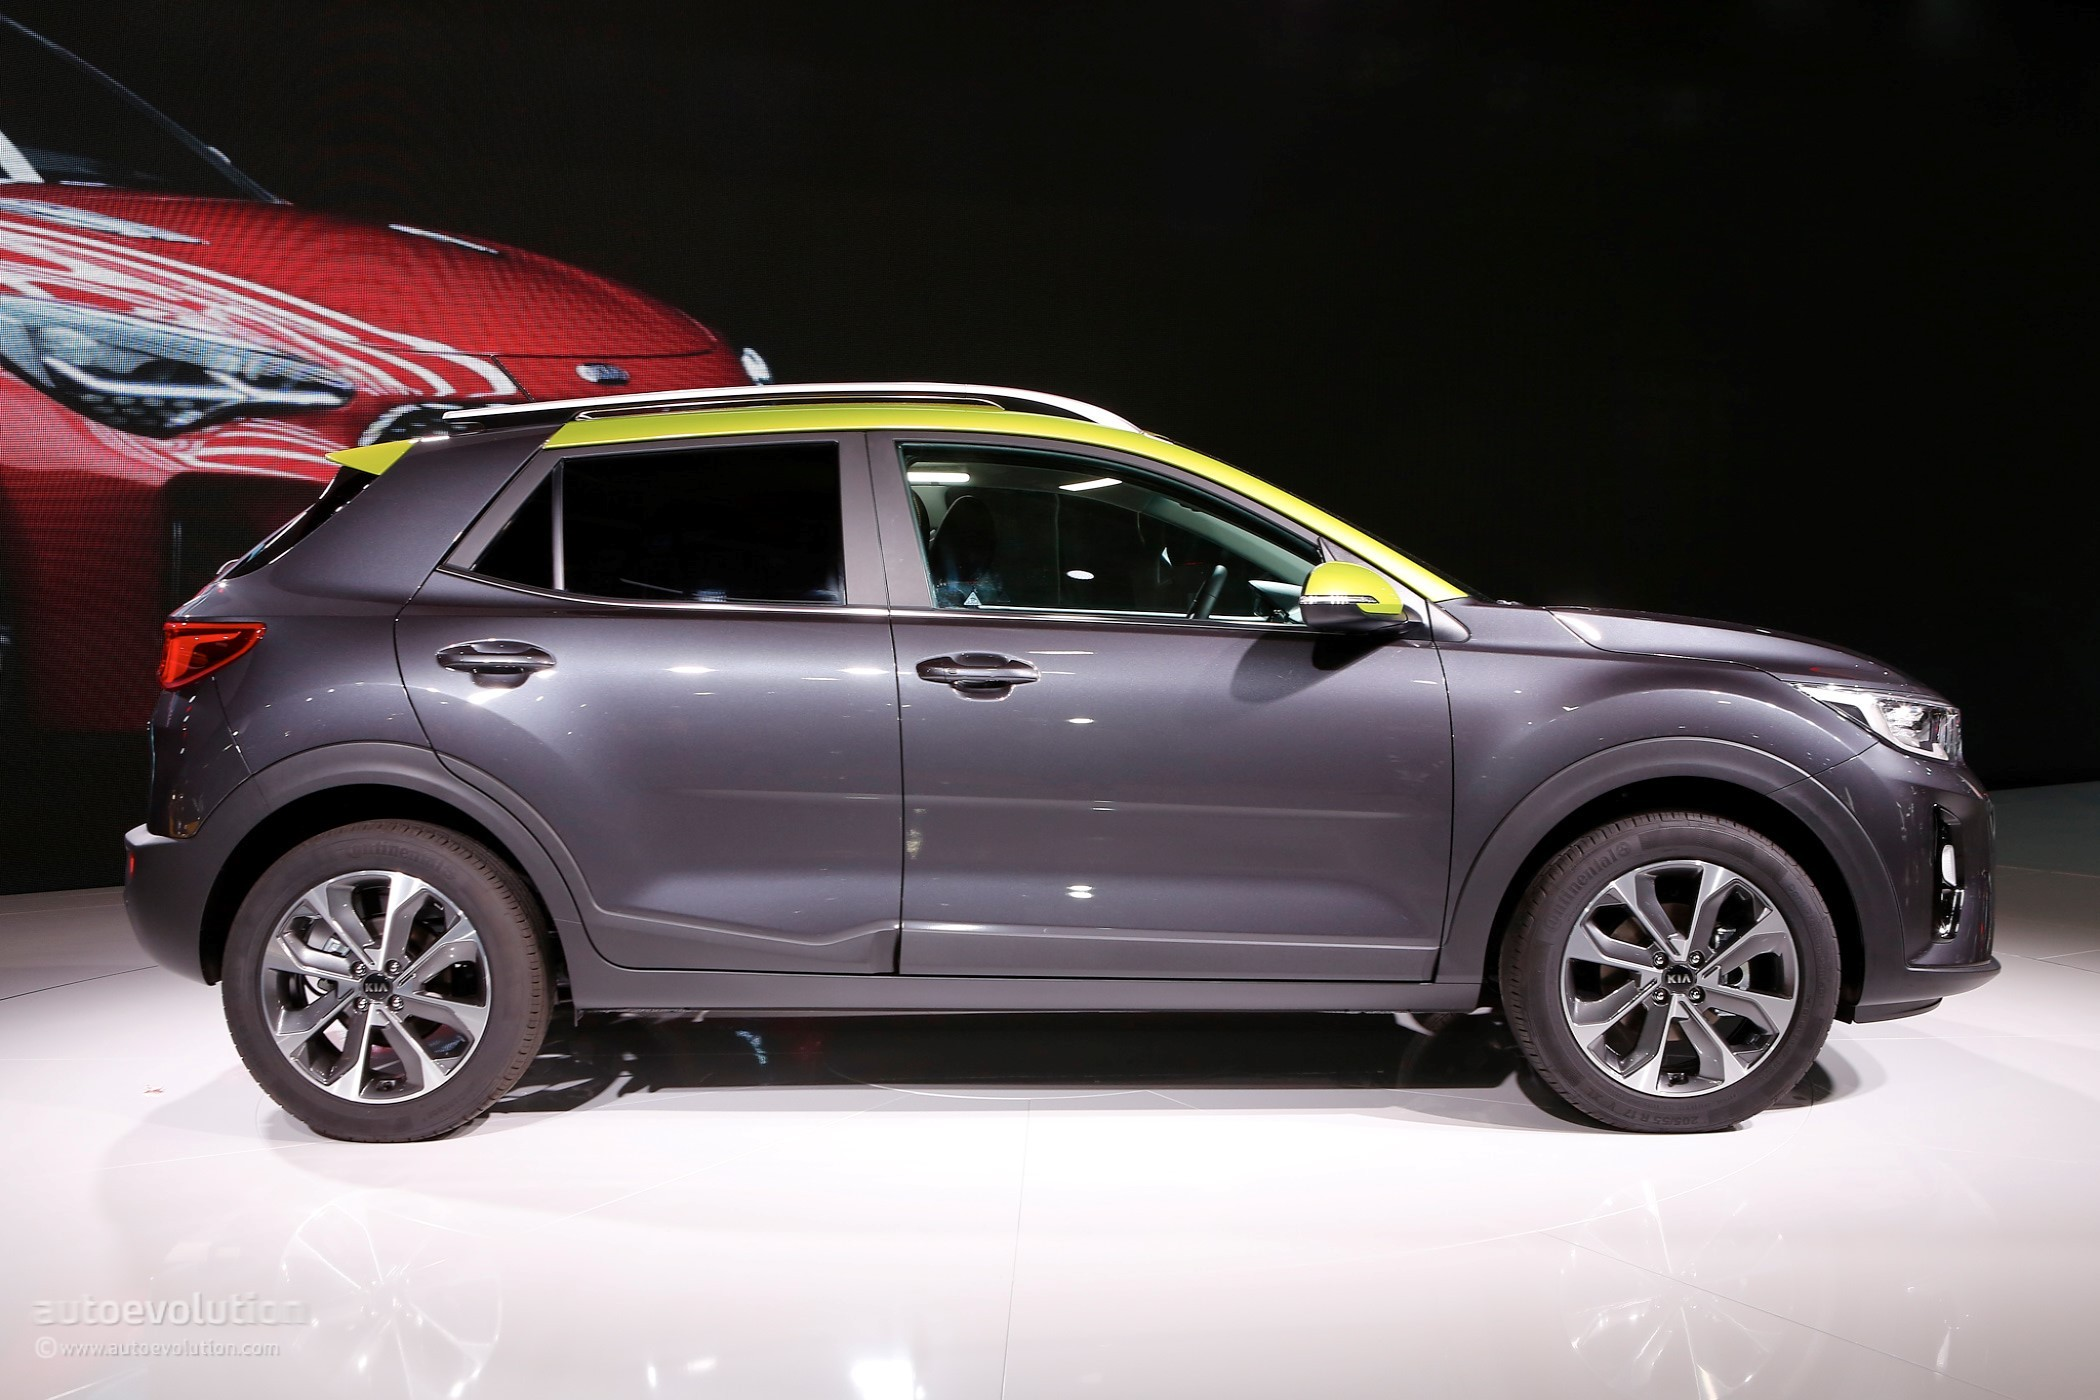 2018 Kia Stonic Looks Conservative Compared To New Hyundai